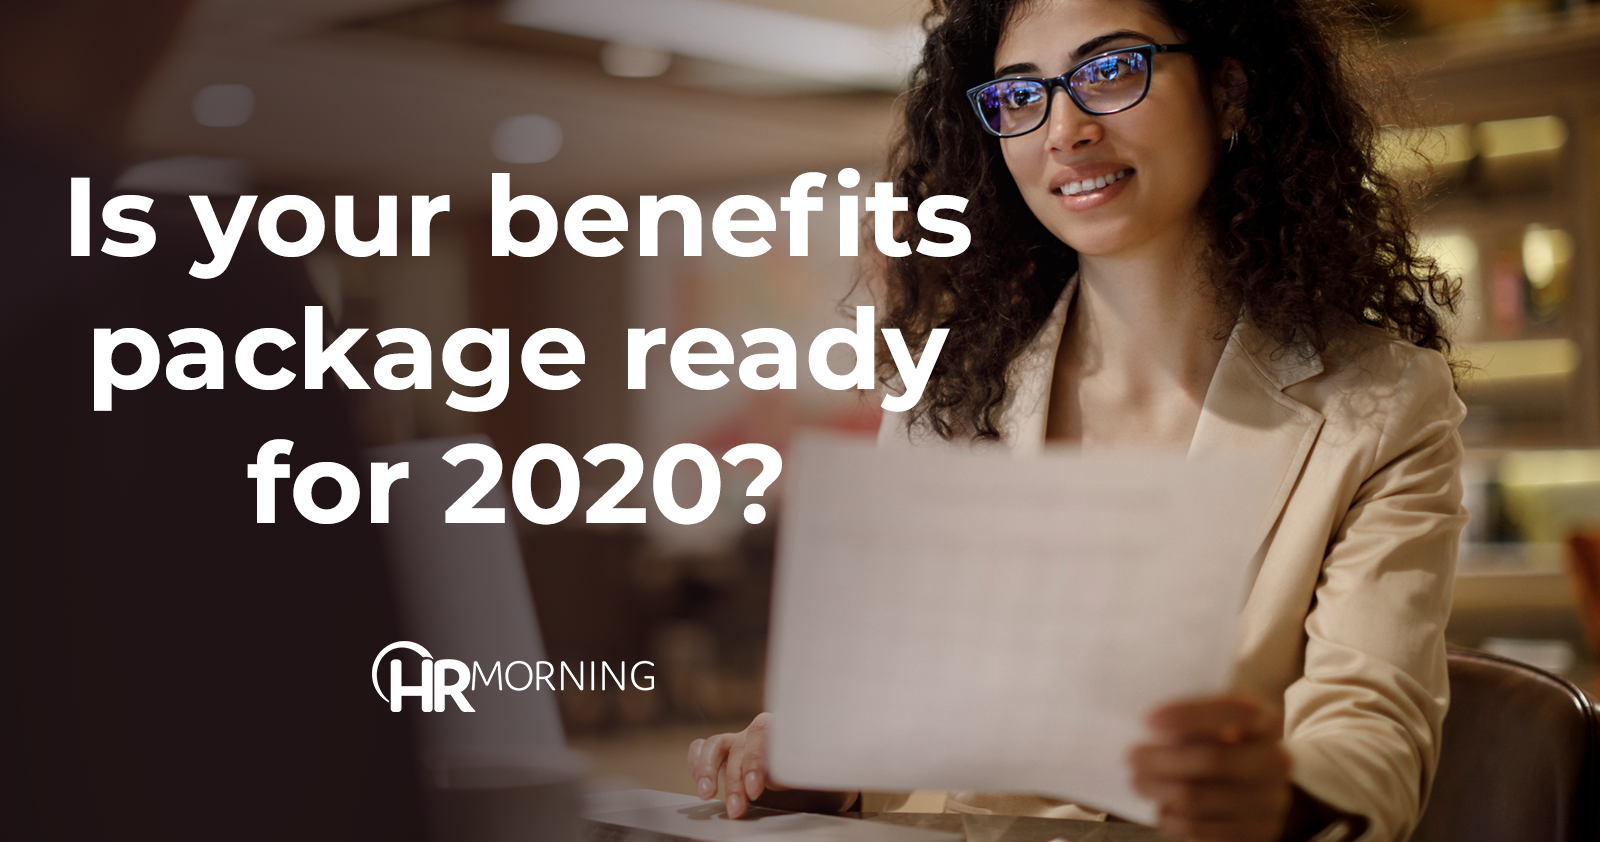 Is your benefits package ready for 2020?